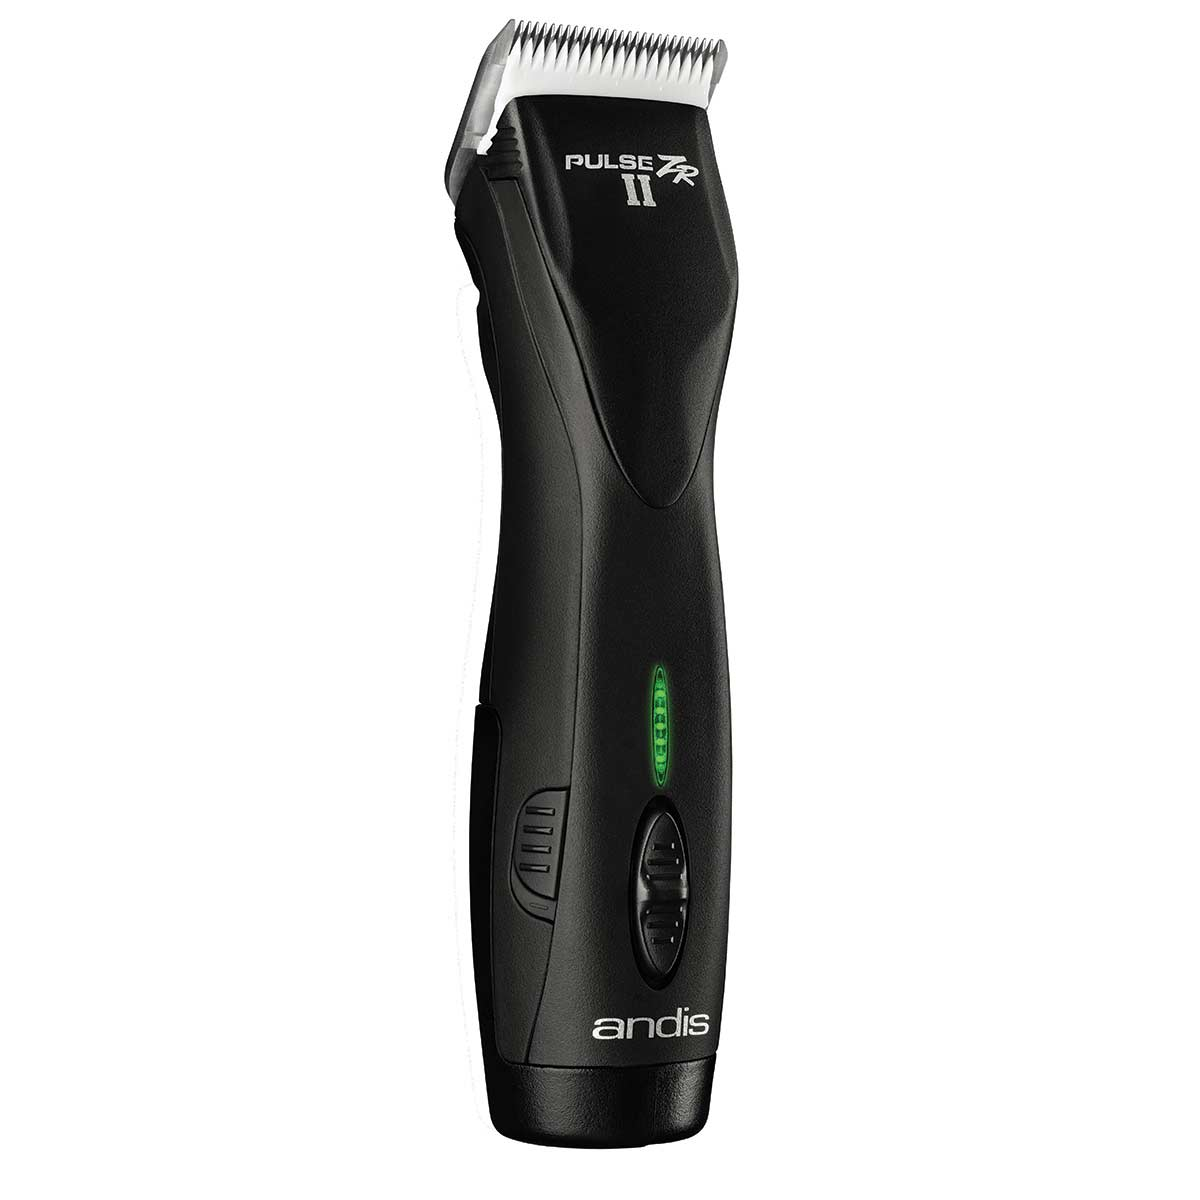 Andis Pulse ZR II Vet Pack 5-Speed Rechargeable Clipper and #40 SS Blade